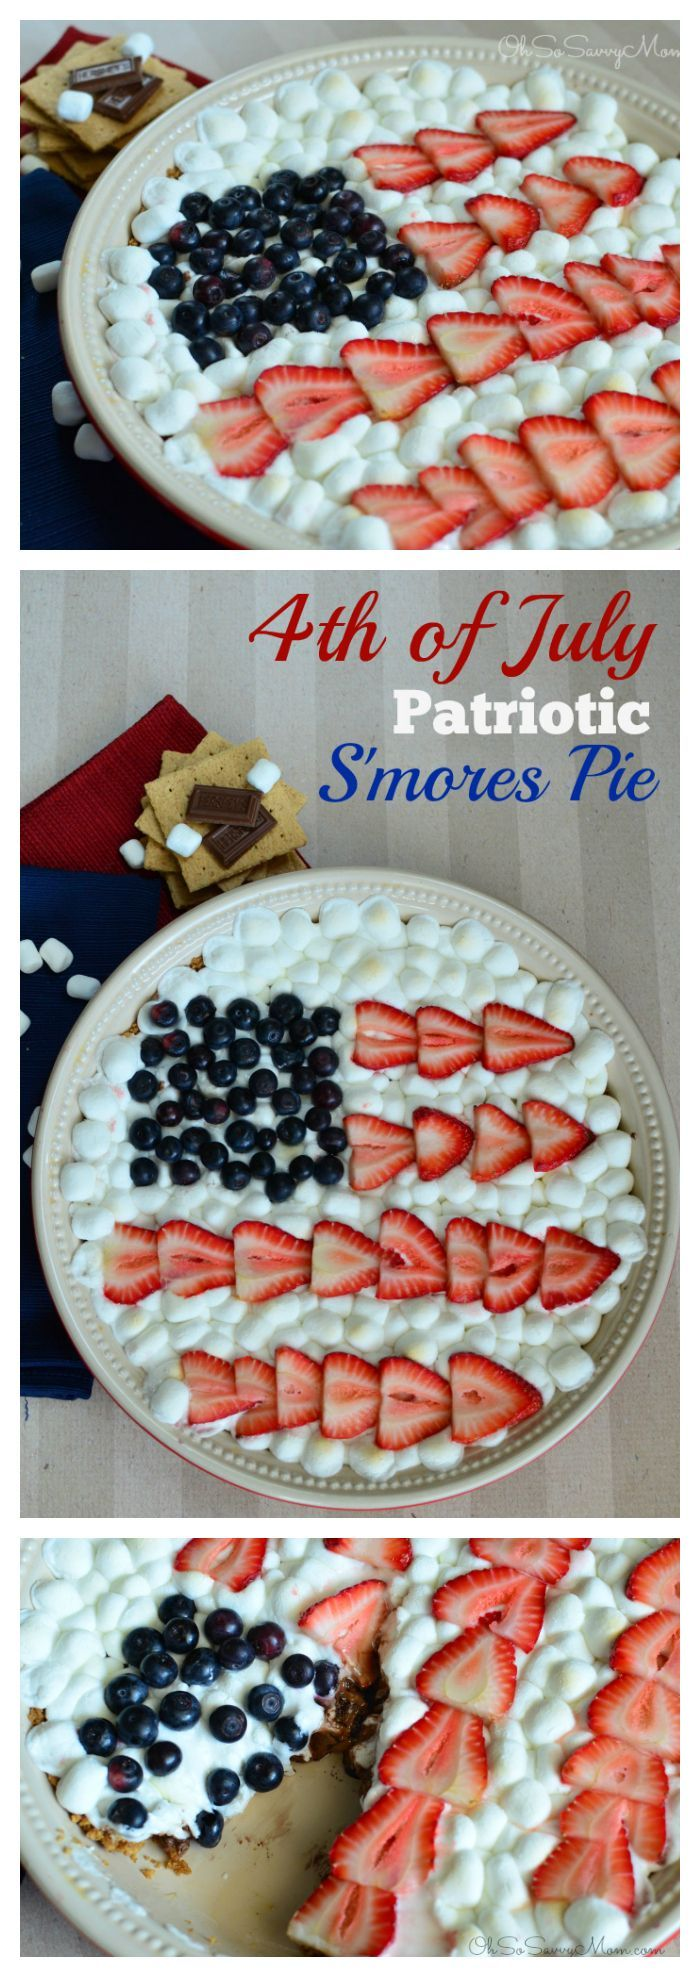 4th of July S'mores Pie! This S'mores Pie dessert with strawberries and blueberr…